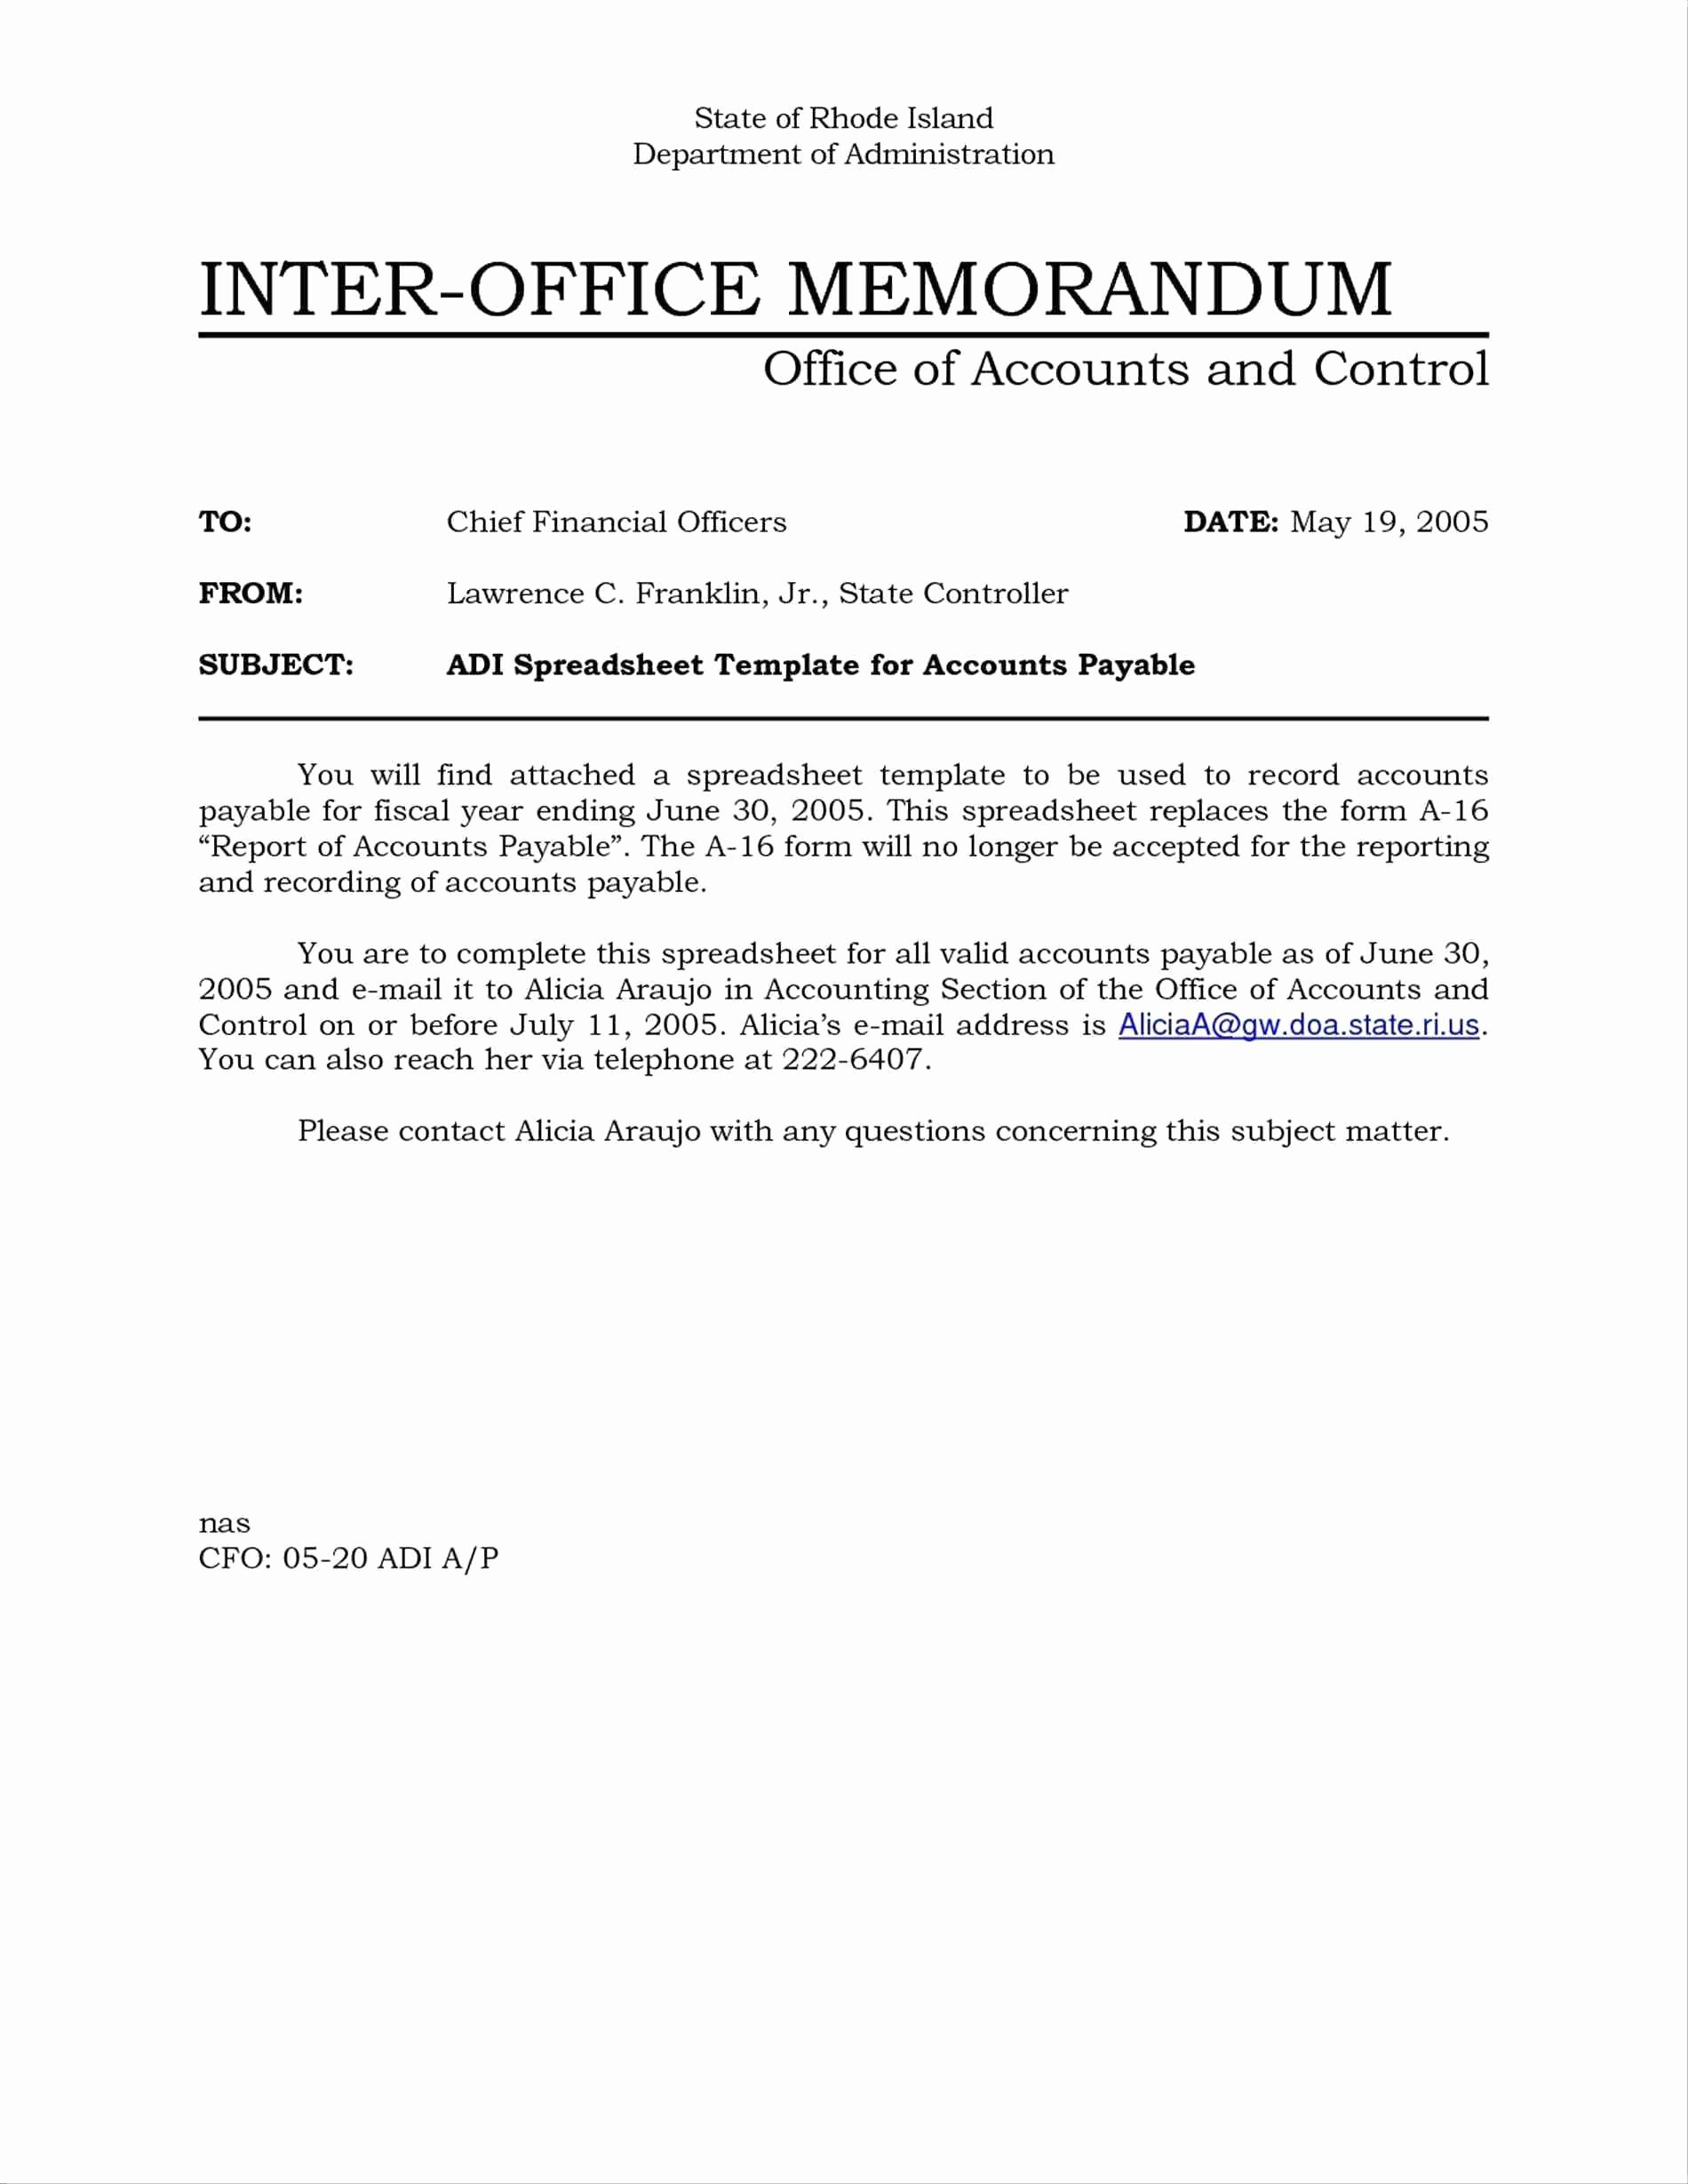 Memorandum Template Word 2010 Beautiful 7 Example Of Interoffice Memo